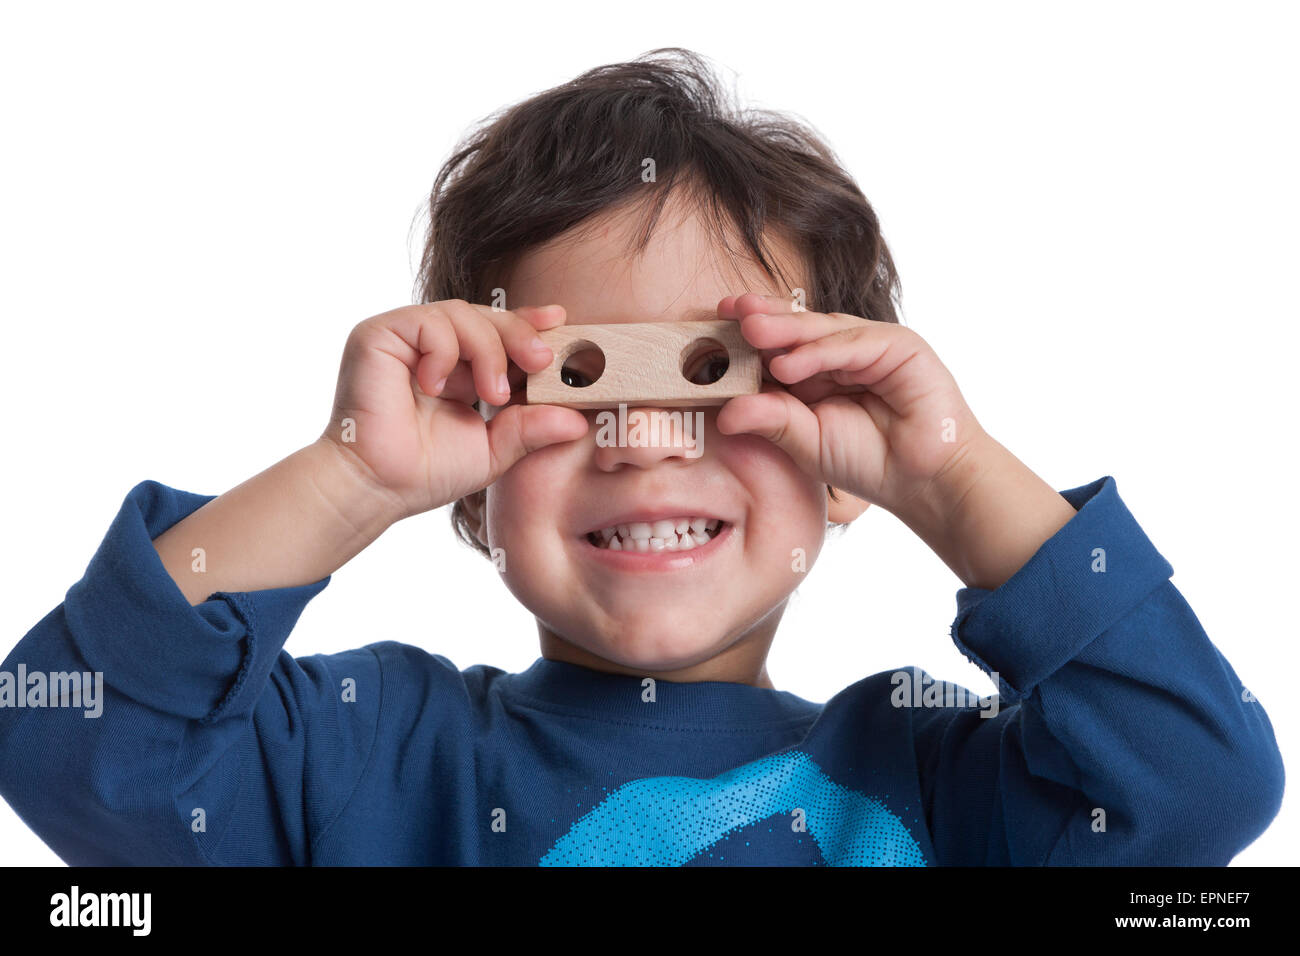 Two year old boy looking through the holes of a block on white background - Stock Image